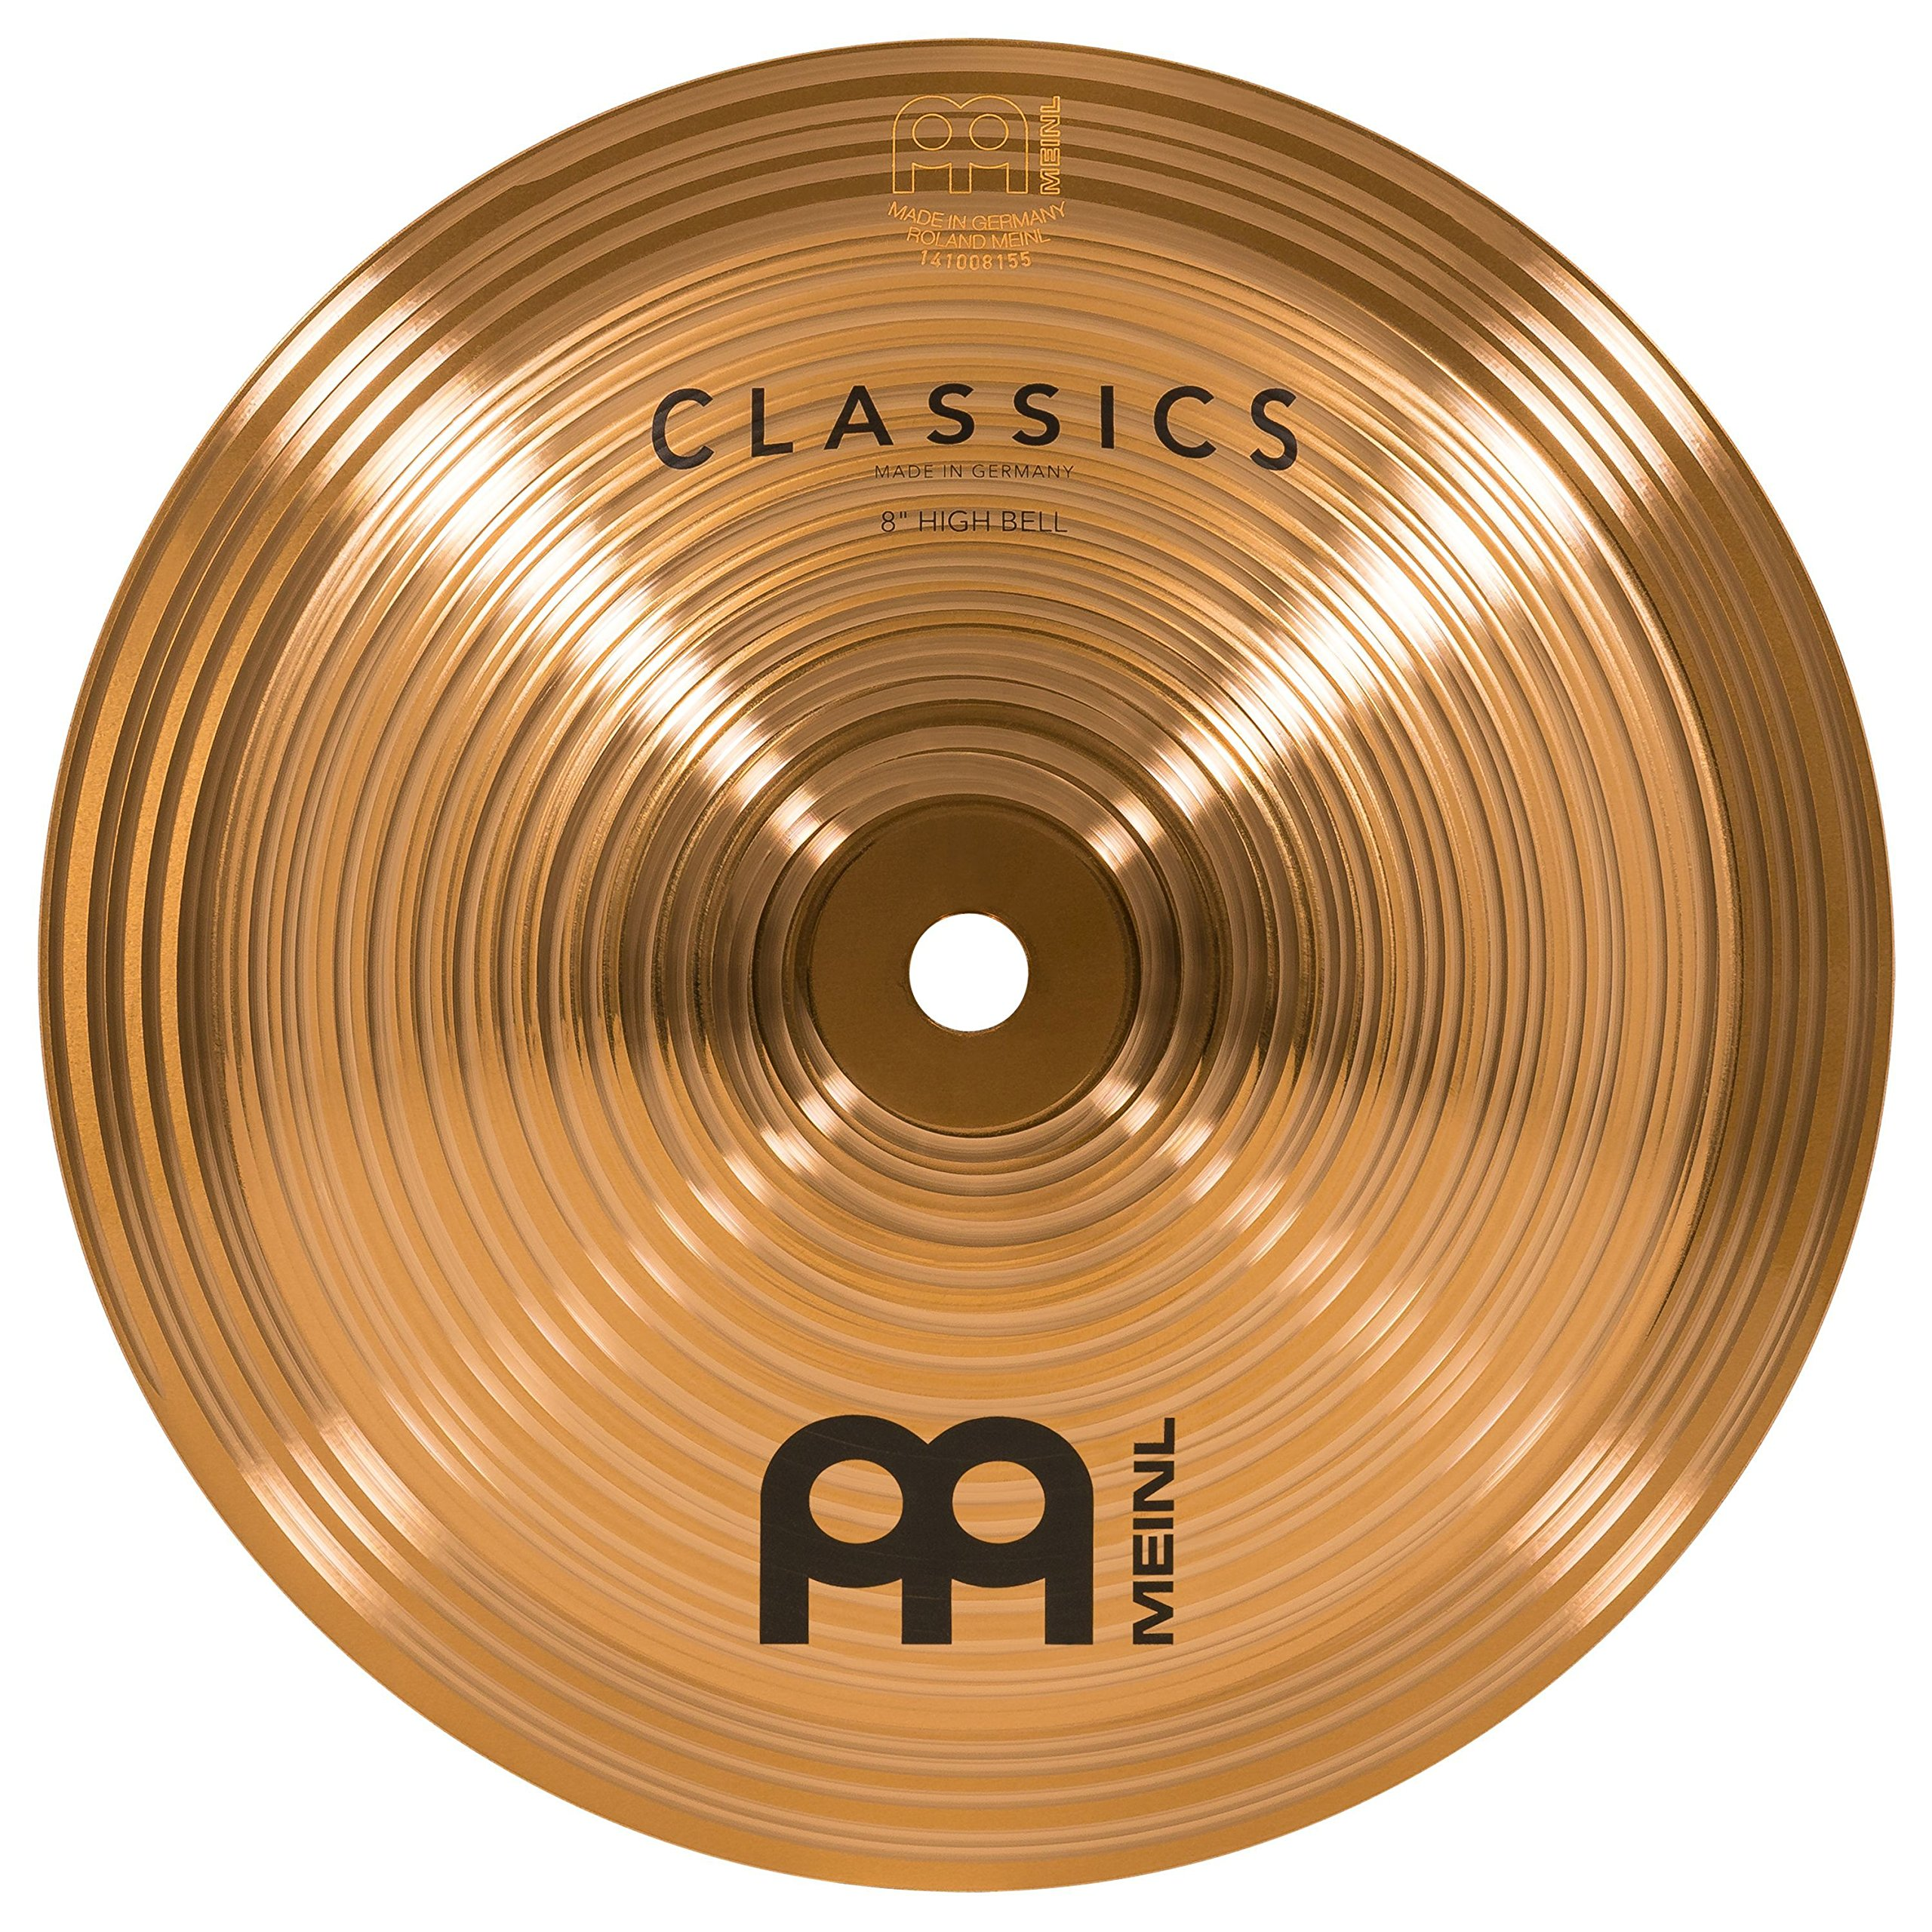 Meinl 8'' High Bell - Classics Traditional - Made in Germany, 2-YEAR WARRANTY (C8BH) by Meinl Cymbals